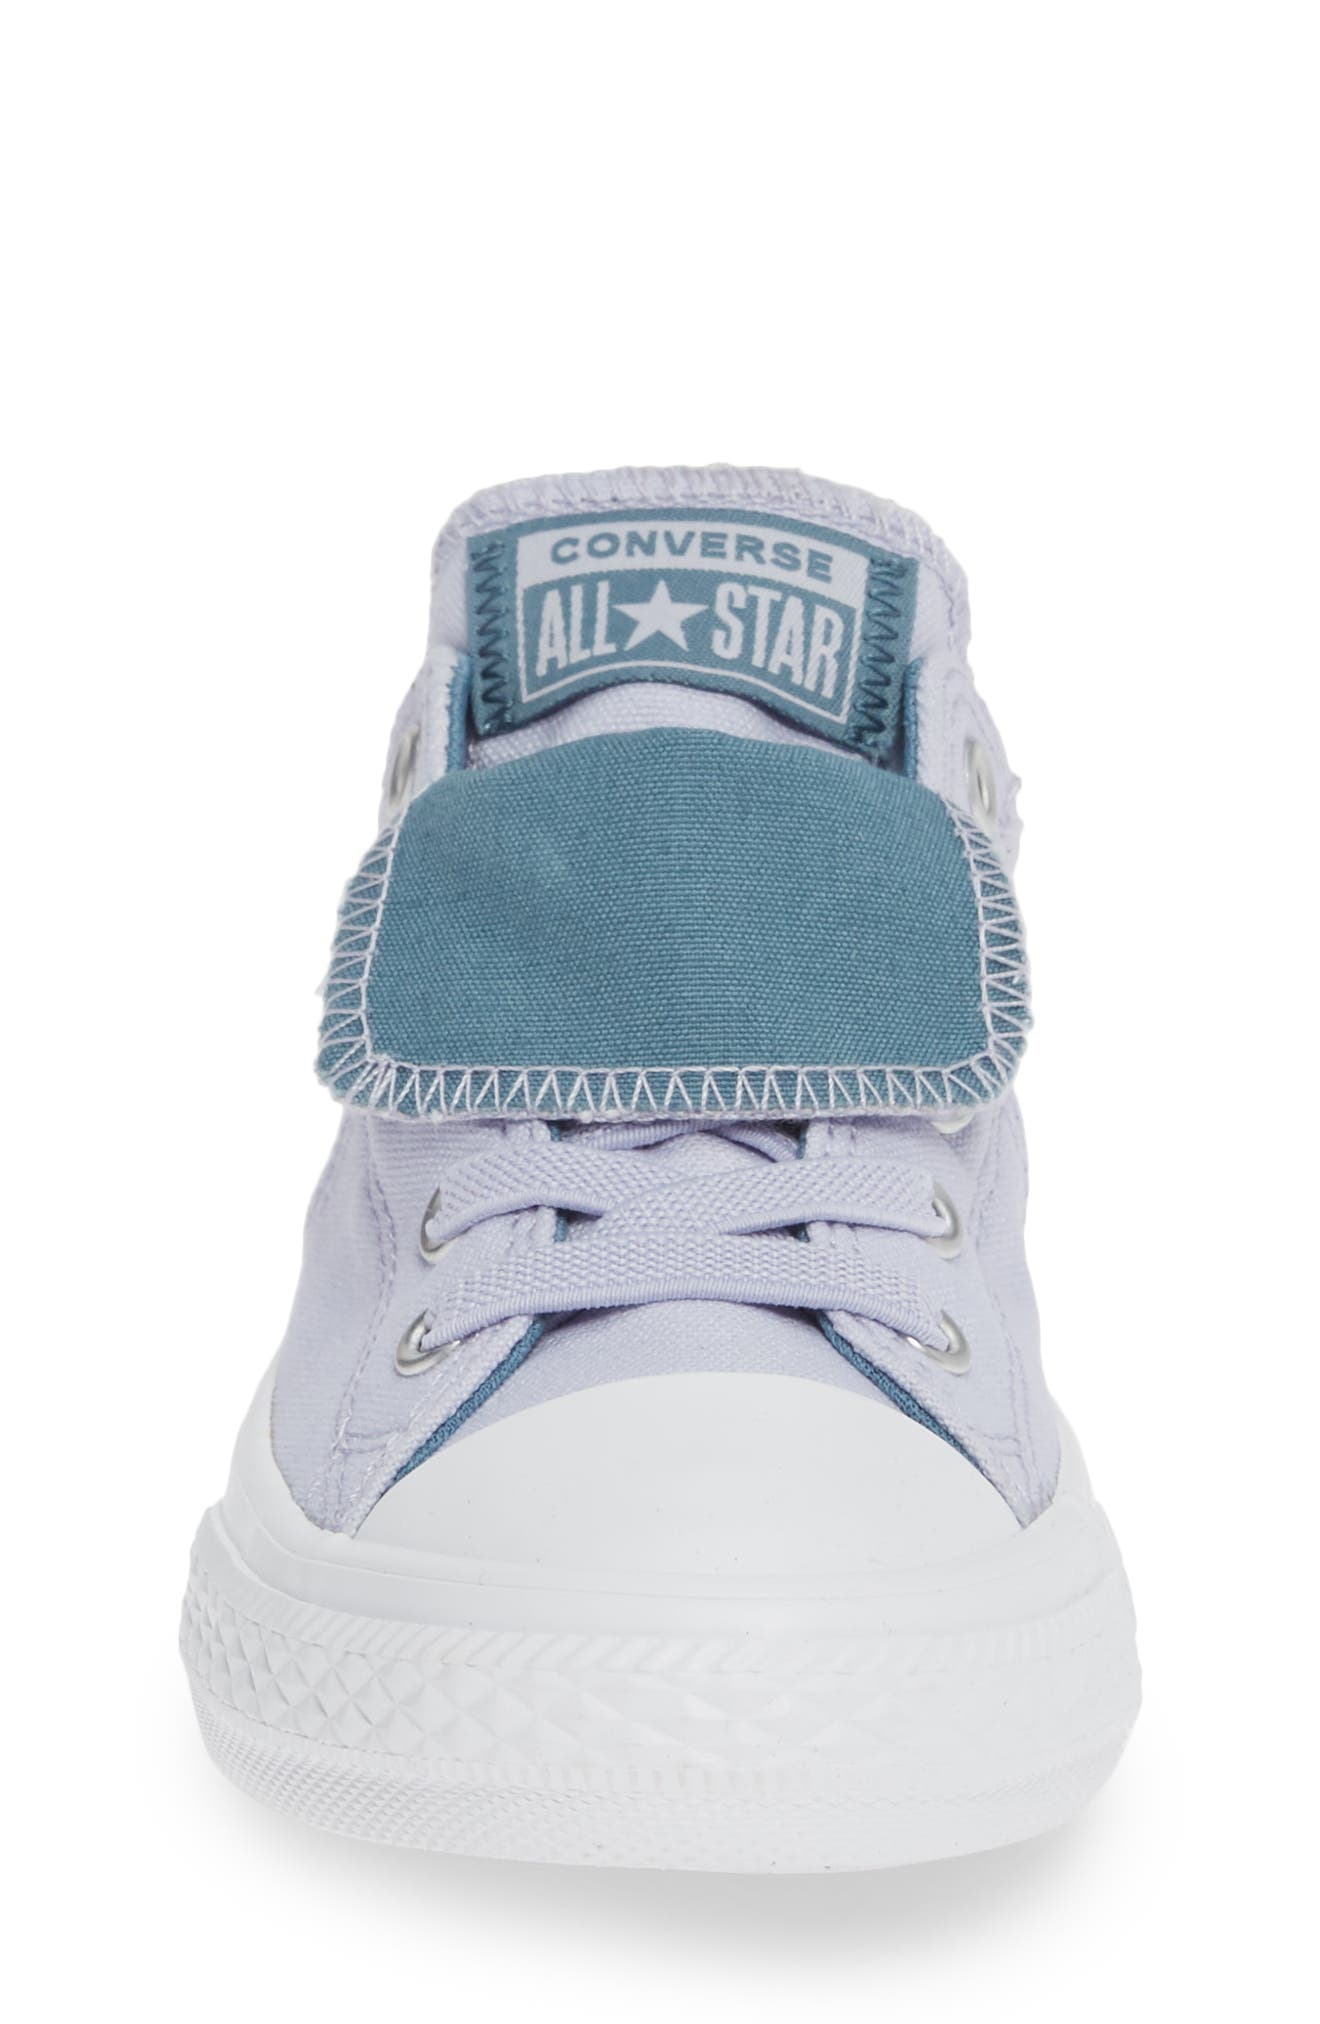 CONVERSE, Chuck Taylor<sup>®</sup> All Star<sup>®</sup> Maddie Double Tongue Sneaker, Alternate thumbnail 4, color, OXYGEN PURPLE/ CELESTIAL TEAL